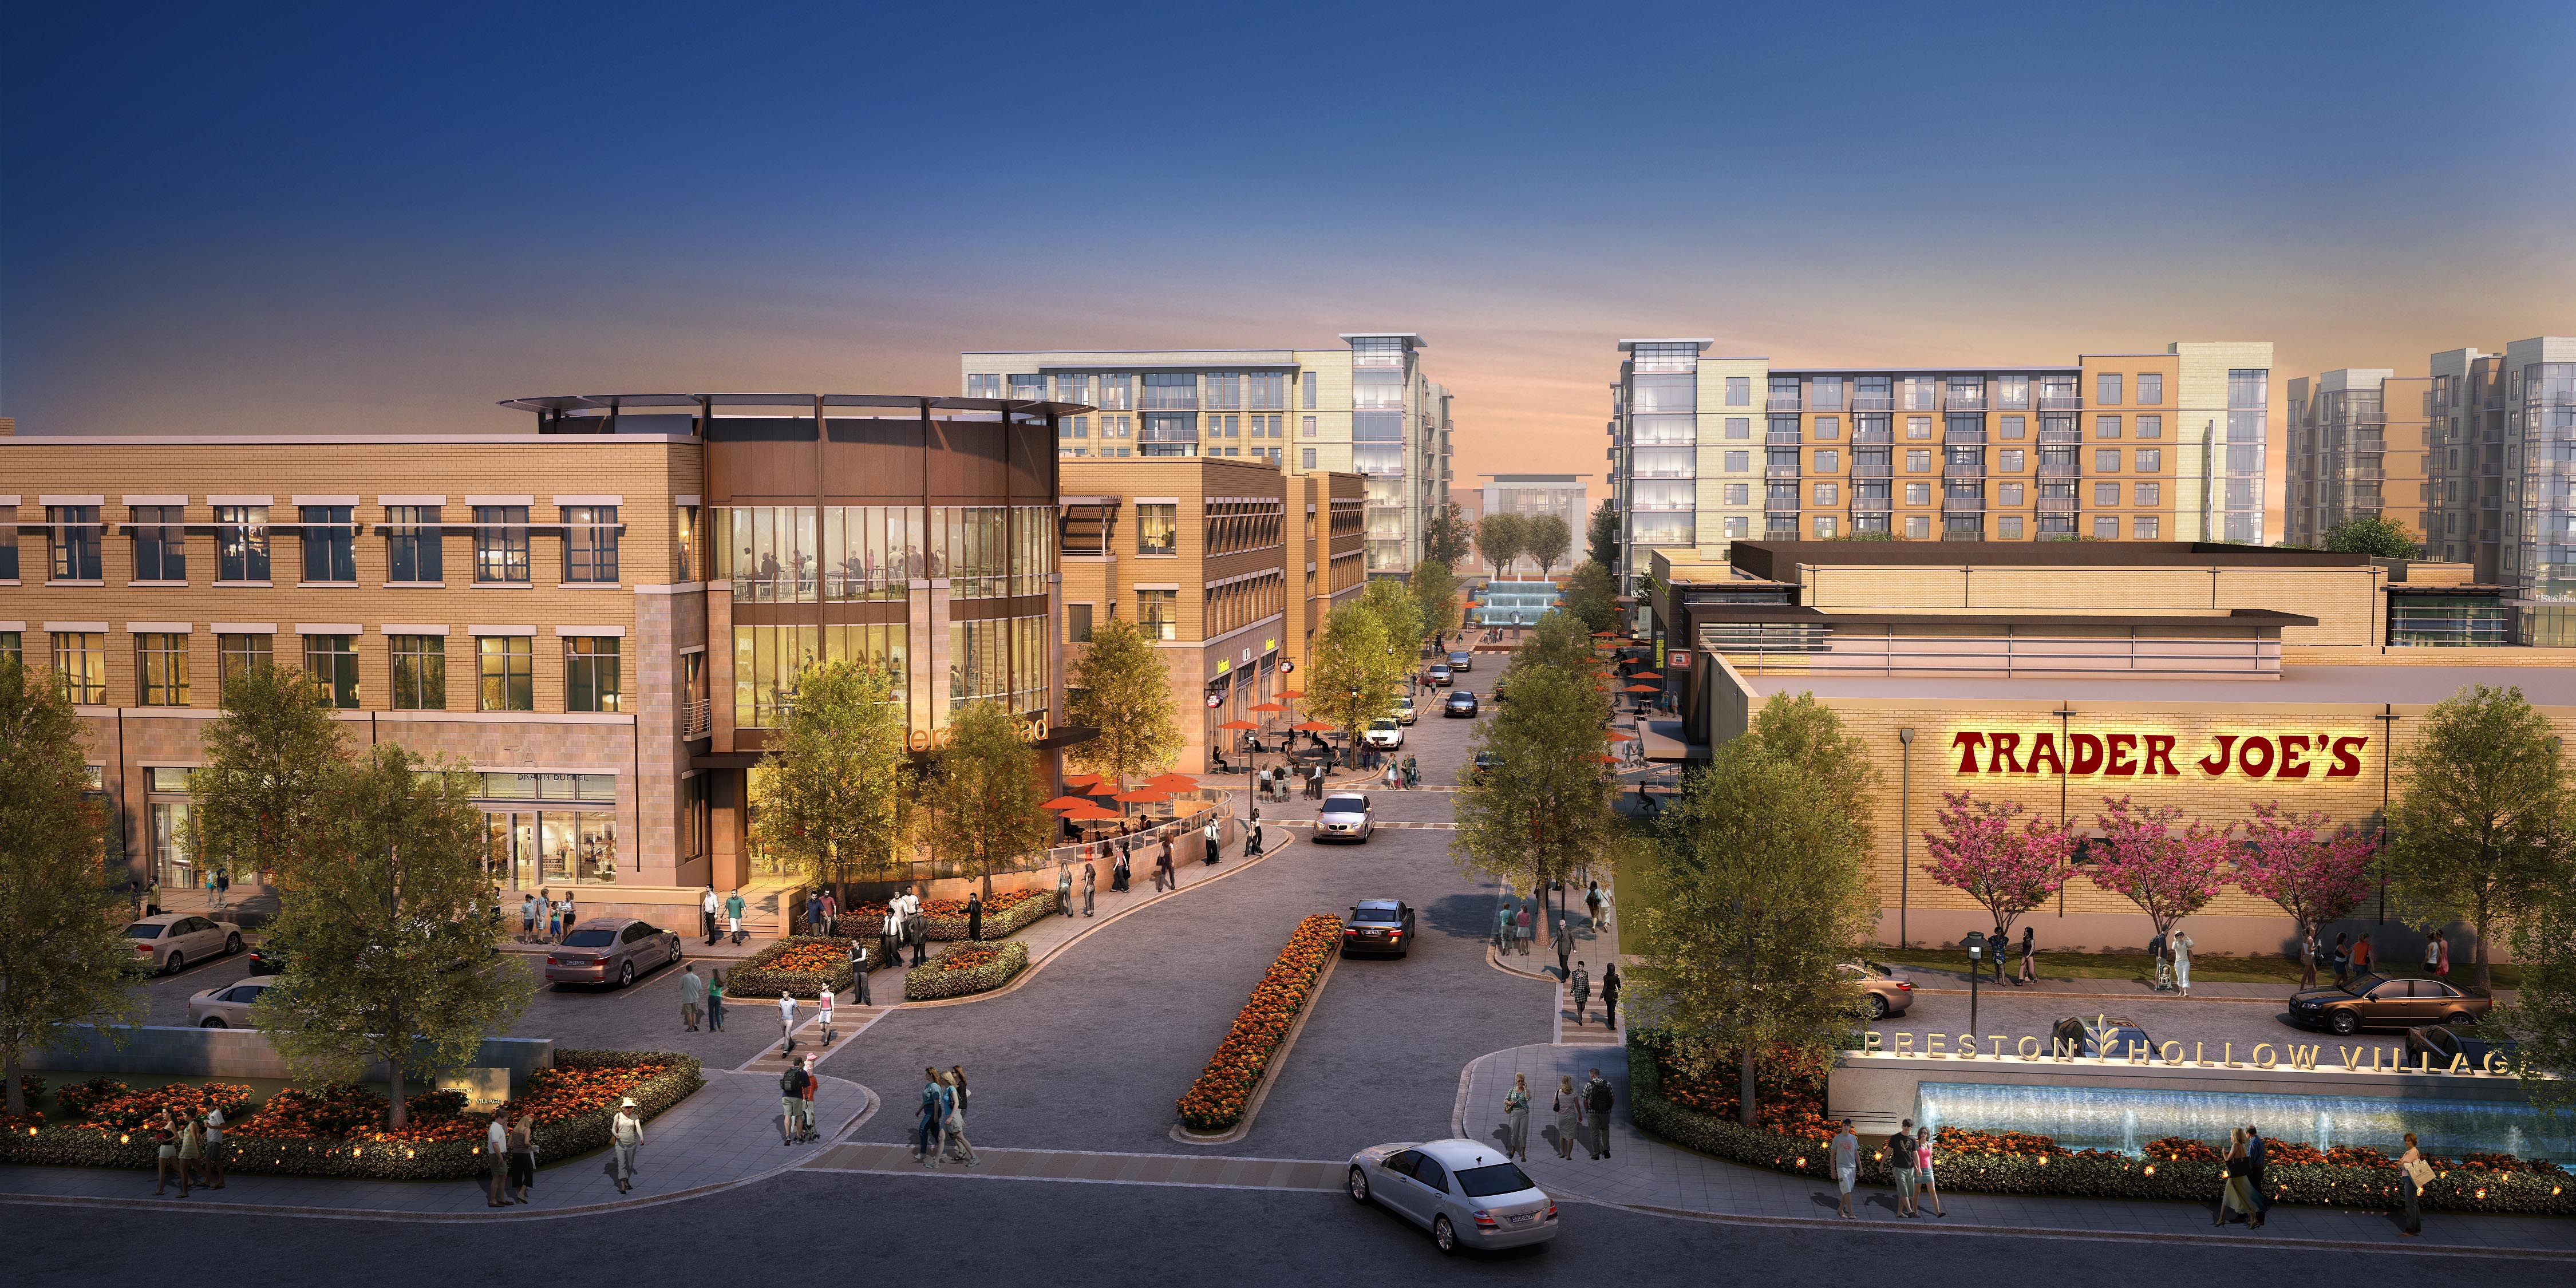 Discover Ideas About Mixed Use Preston Hollow Village Dallas Texas Prestonhollow Prestonhollowvillage Midrise Mixeduse Apartments